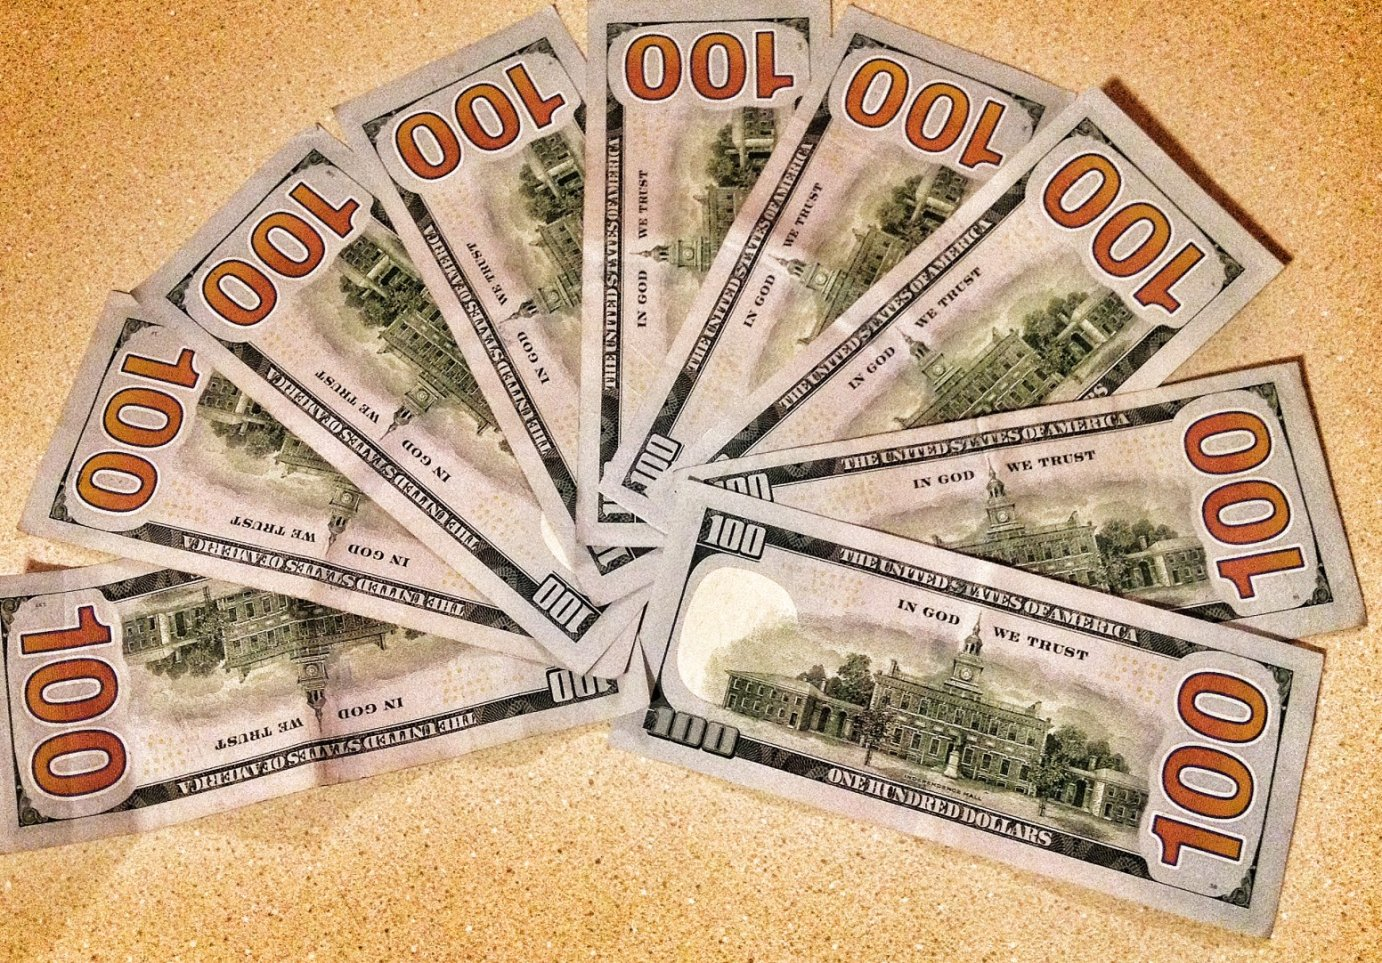 Assortment of $100 bills.  The Kansas Treasury needs to collect many, many more of these so the state can pay its bills. (Photo by J. Schafer)